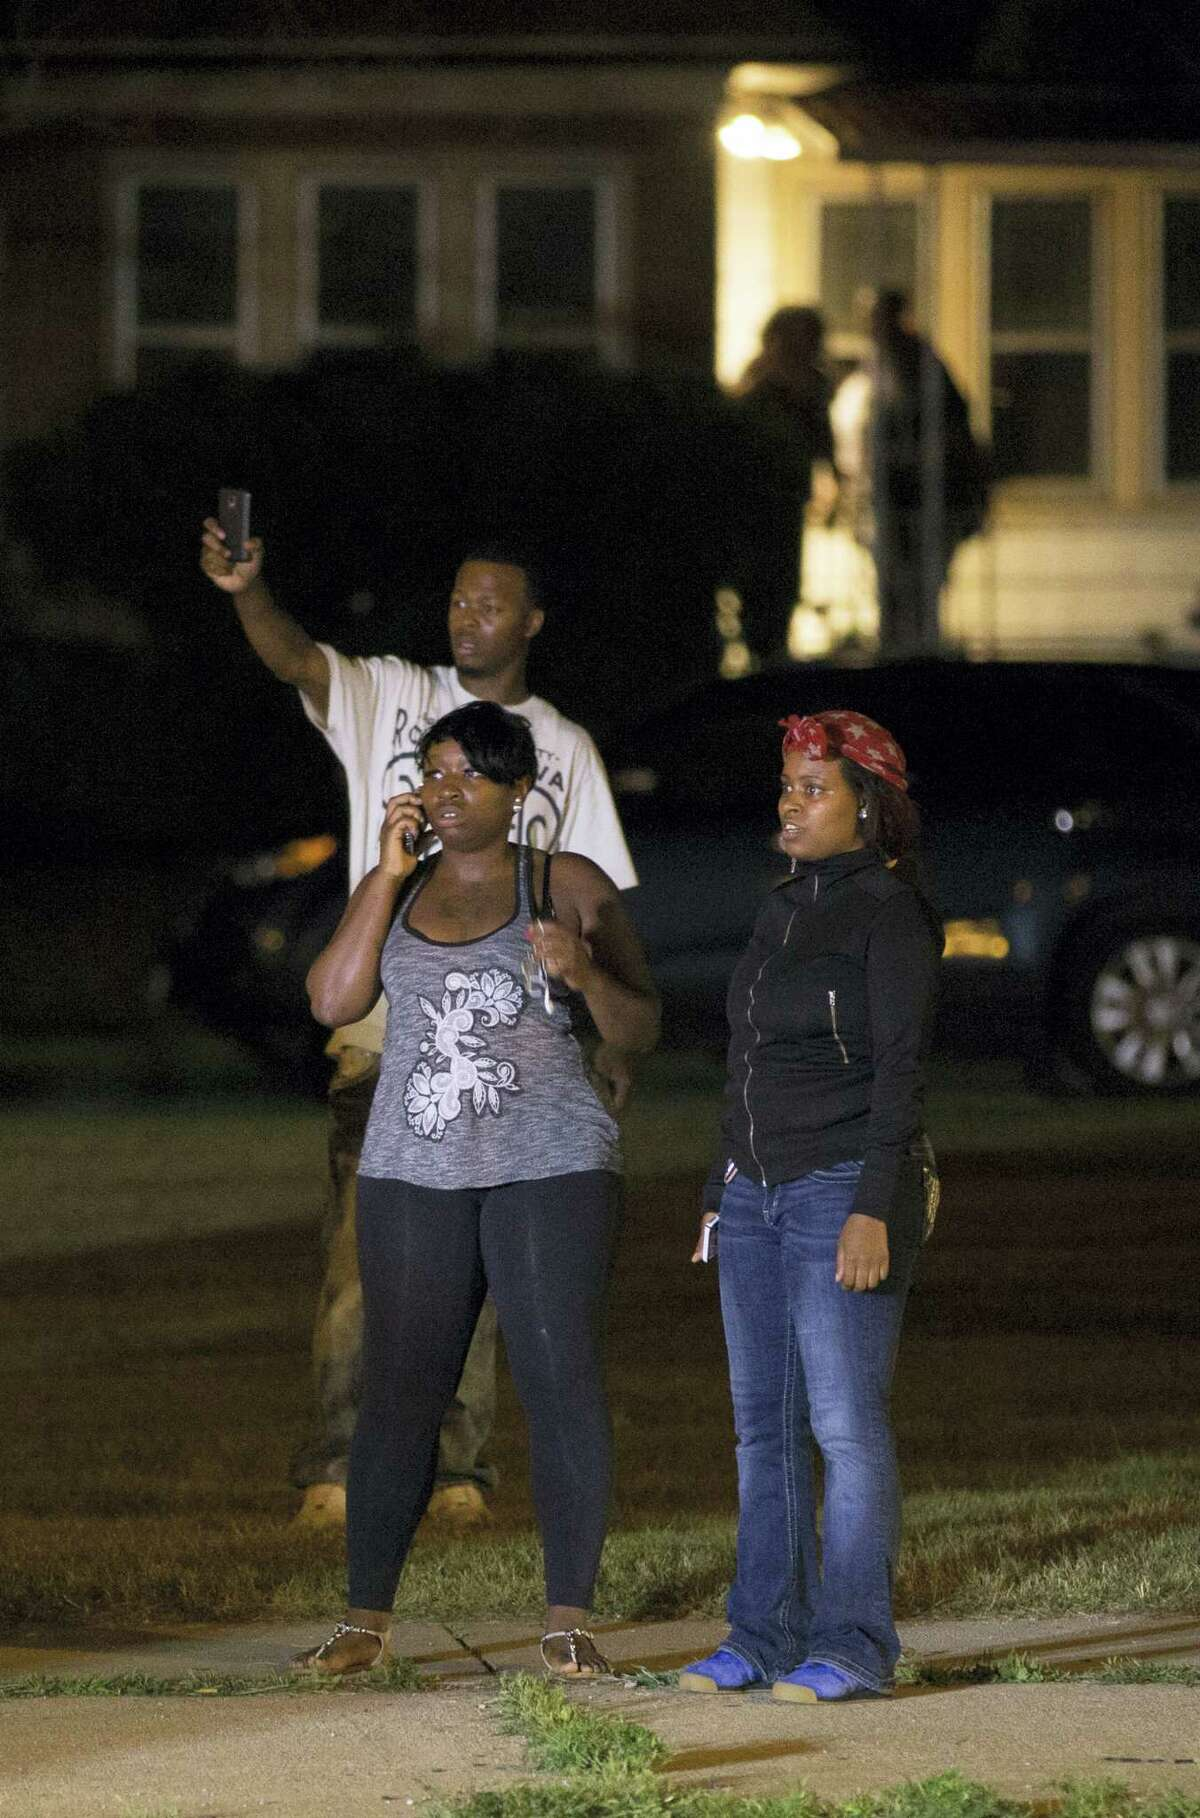 Bystanders watch as a crowd of more than 100 people gathers following the fatal shooting of a man in Milwaukee on Aug. 13, 2016. The gathering occurred in the neighborhood where a Milwaukee officer shot and killed a man police say was armed hours earlier during a foot chase.